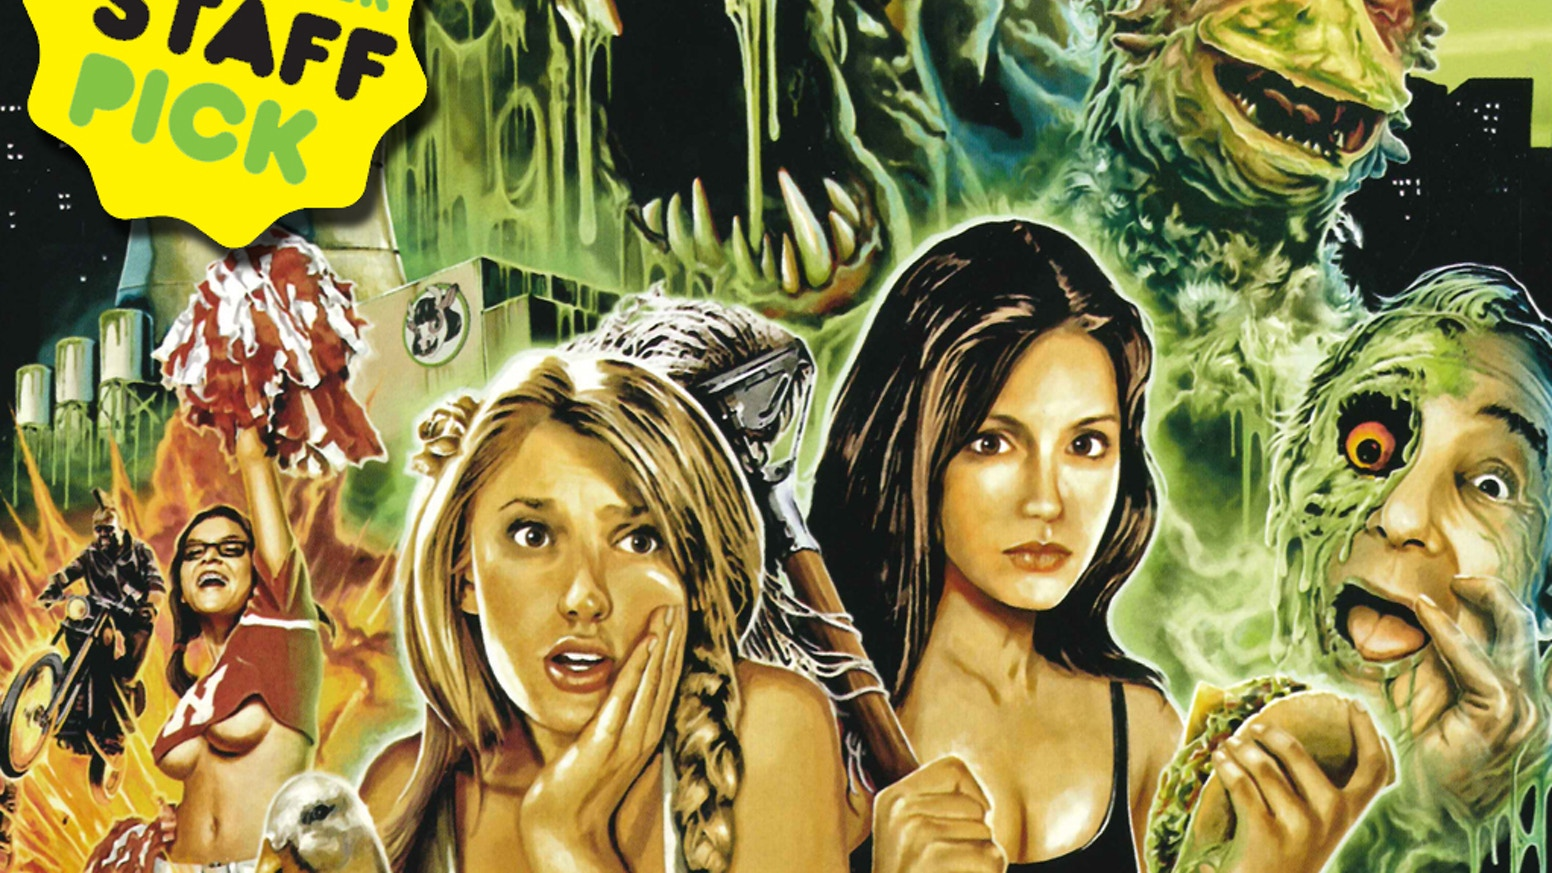 """Troma's """"Return to Nuke 'Em High: Volume 2"""" is a film that tackles 21st century issues in the style of 1980s genre films!"""